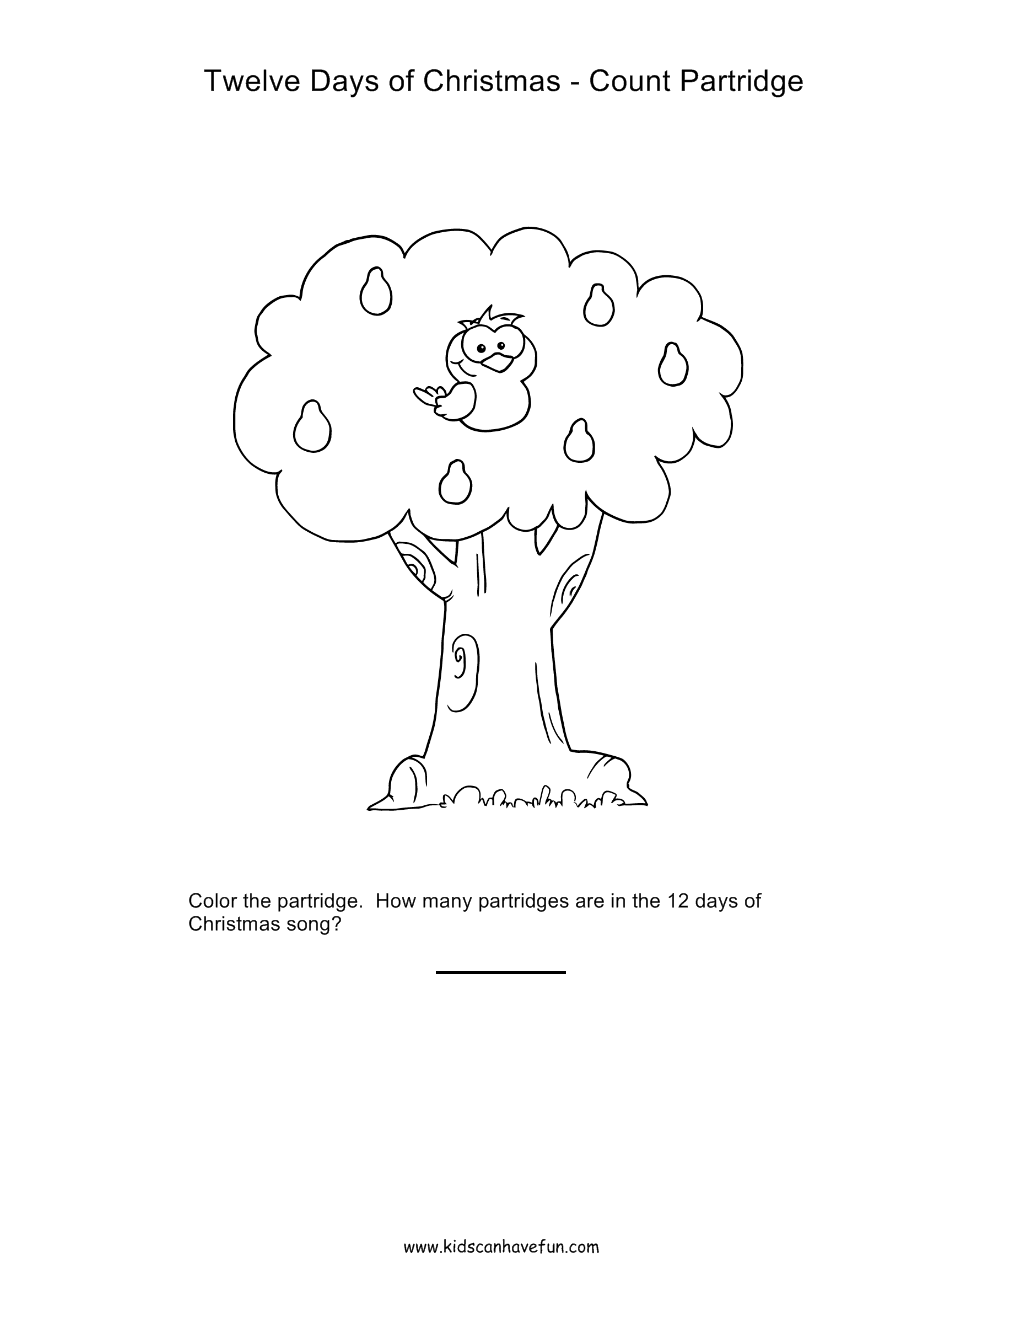 Twelve Days Of Christmas Partridge In A Pear Tree Counting And Coloring Worksheet Http Www Kidscanhavefun Com Twelve Days Of Christmas Activities Htm 12dayso [ 1319 x 1019 Pixel ]